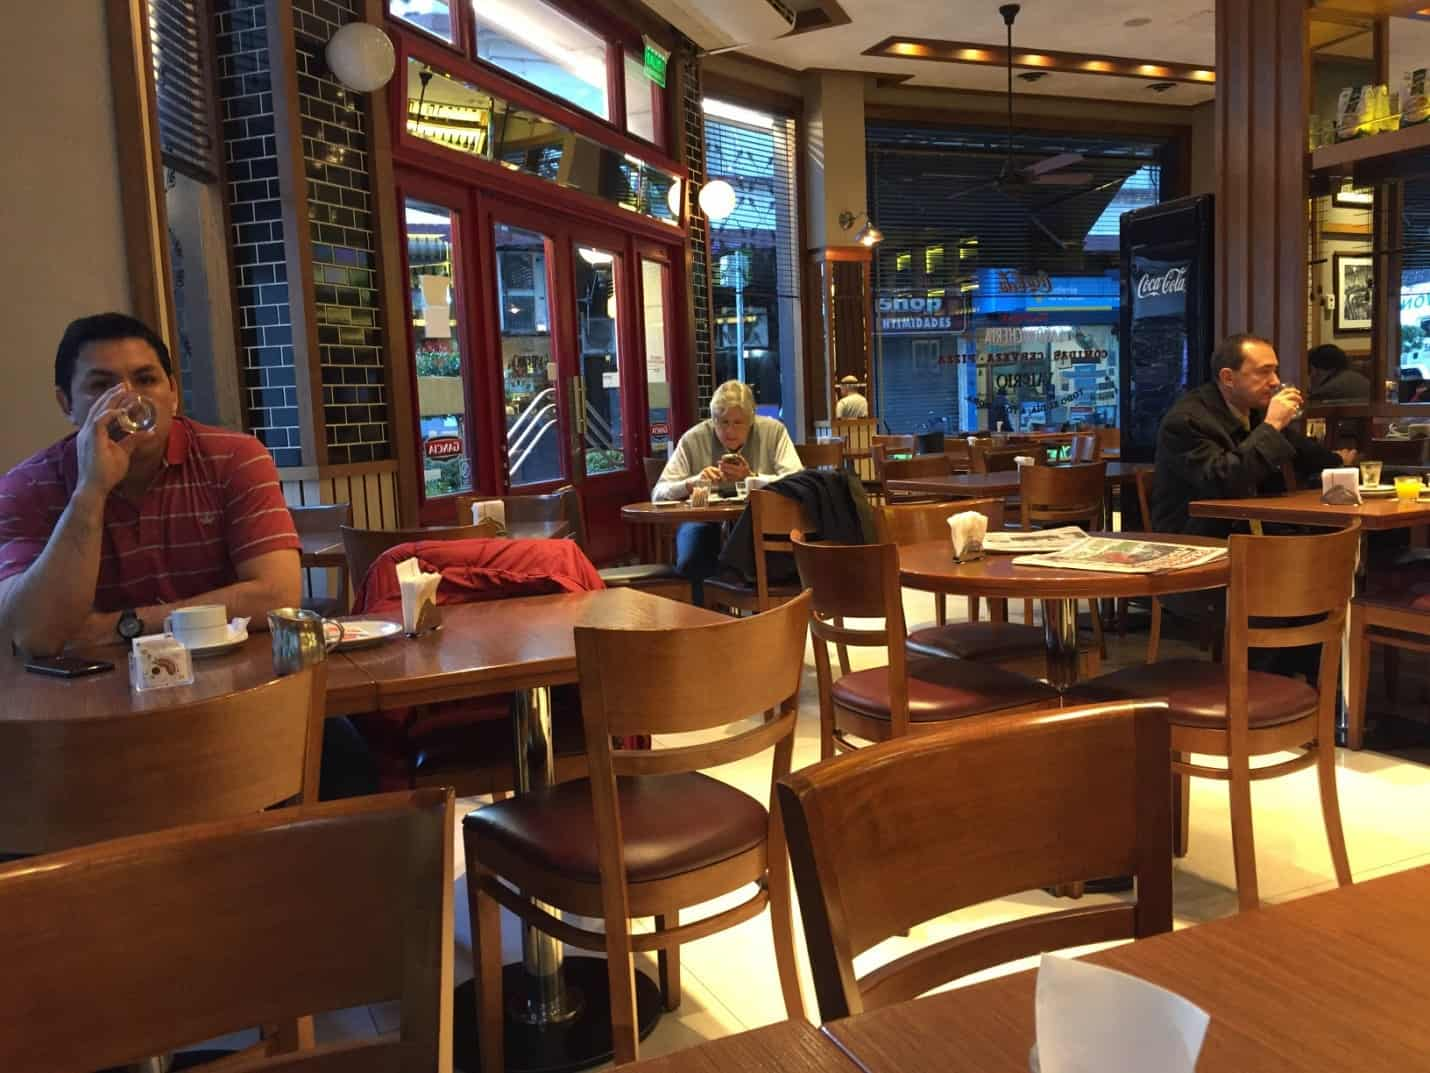 Diner in Buenos Aires - An American in Argentina